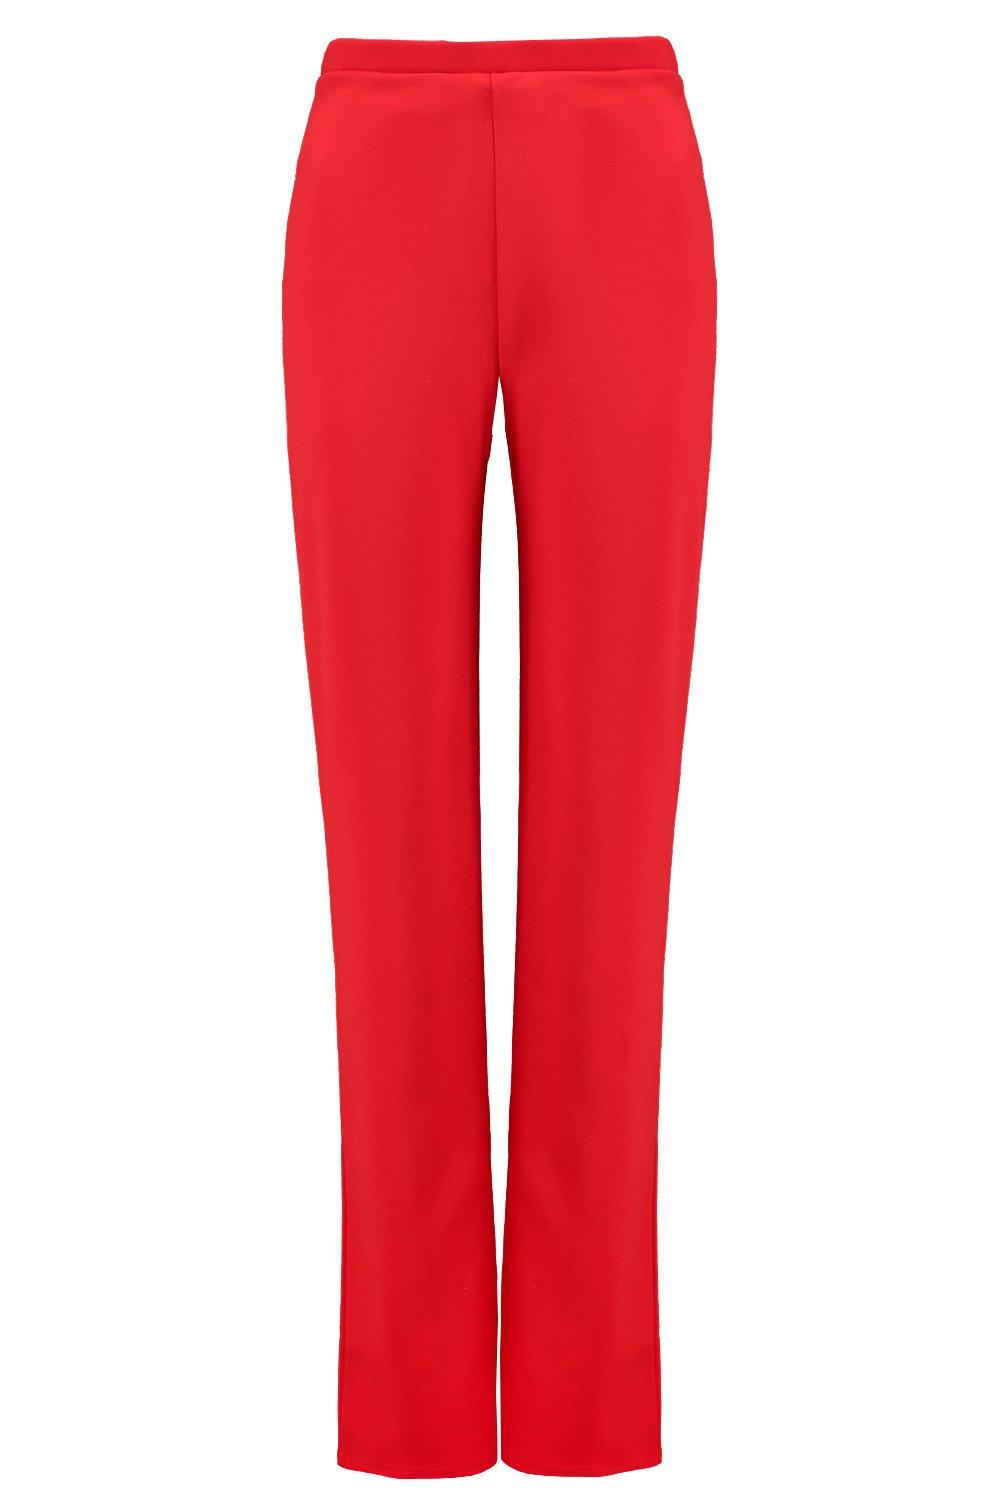 fire red Tailored Tall Cigarette Trouser q0CF4Ow